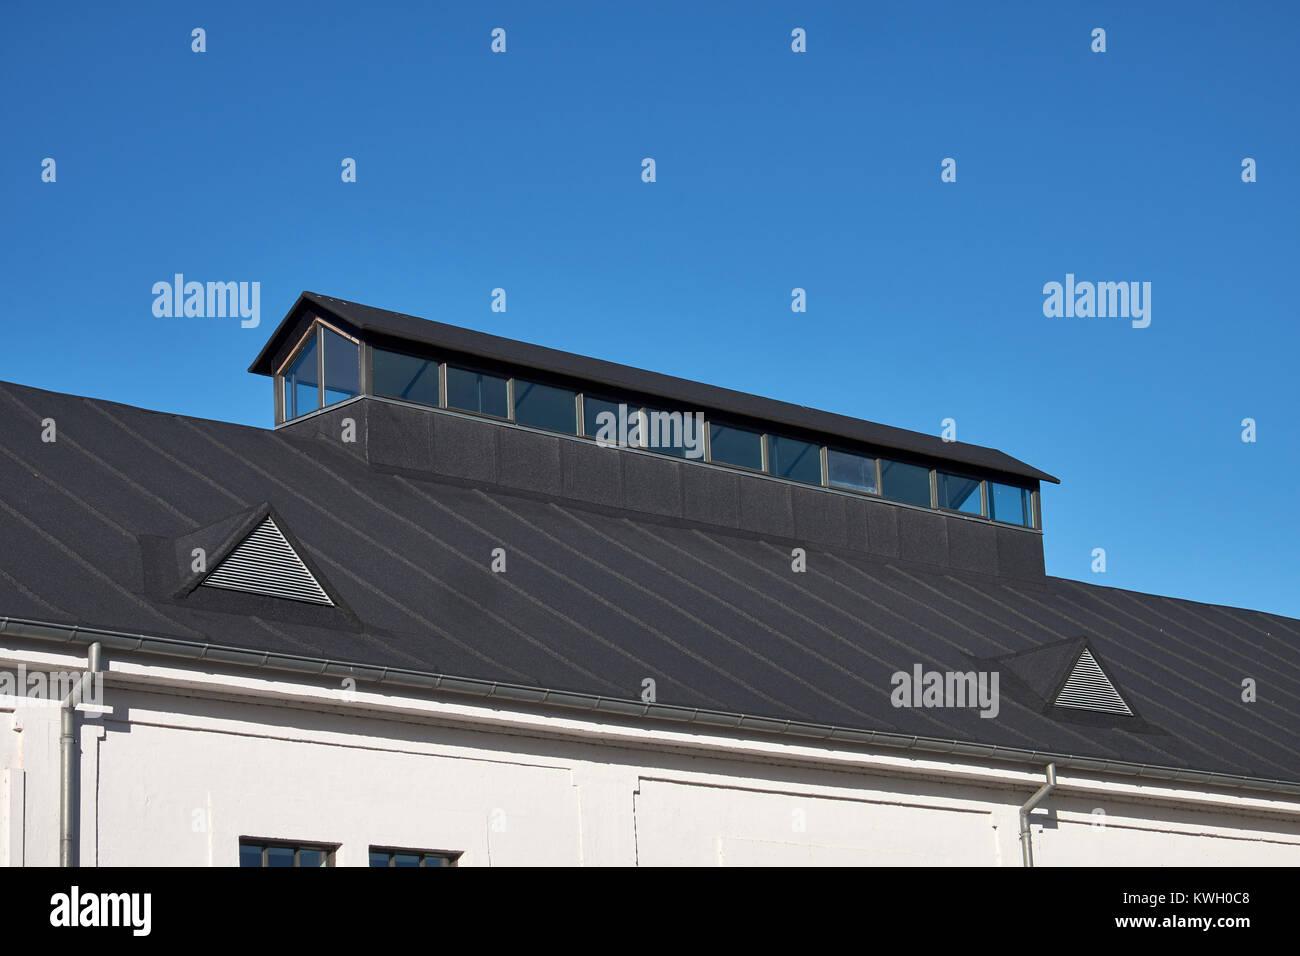 Roofing Tar Roofing Tar Stock Photos Roofing Tar Stock Images Alamy